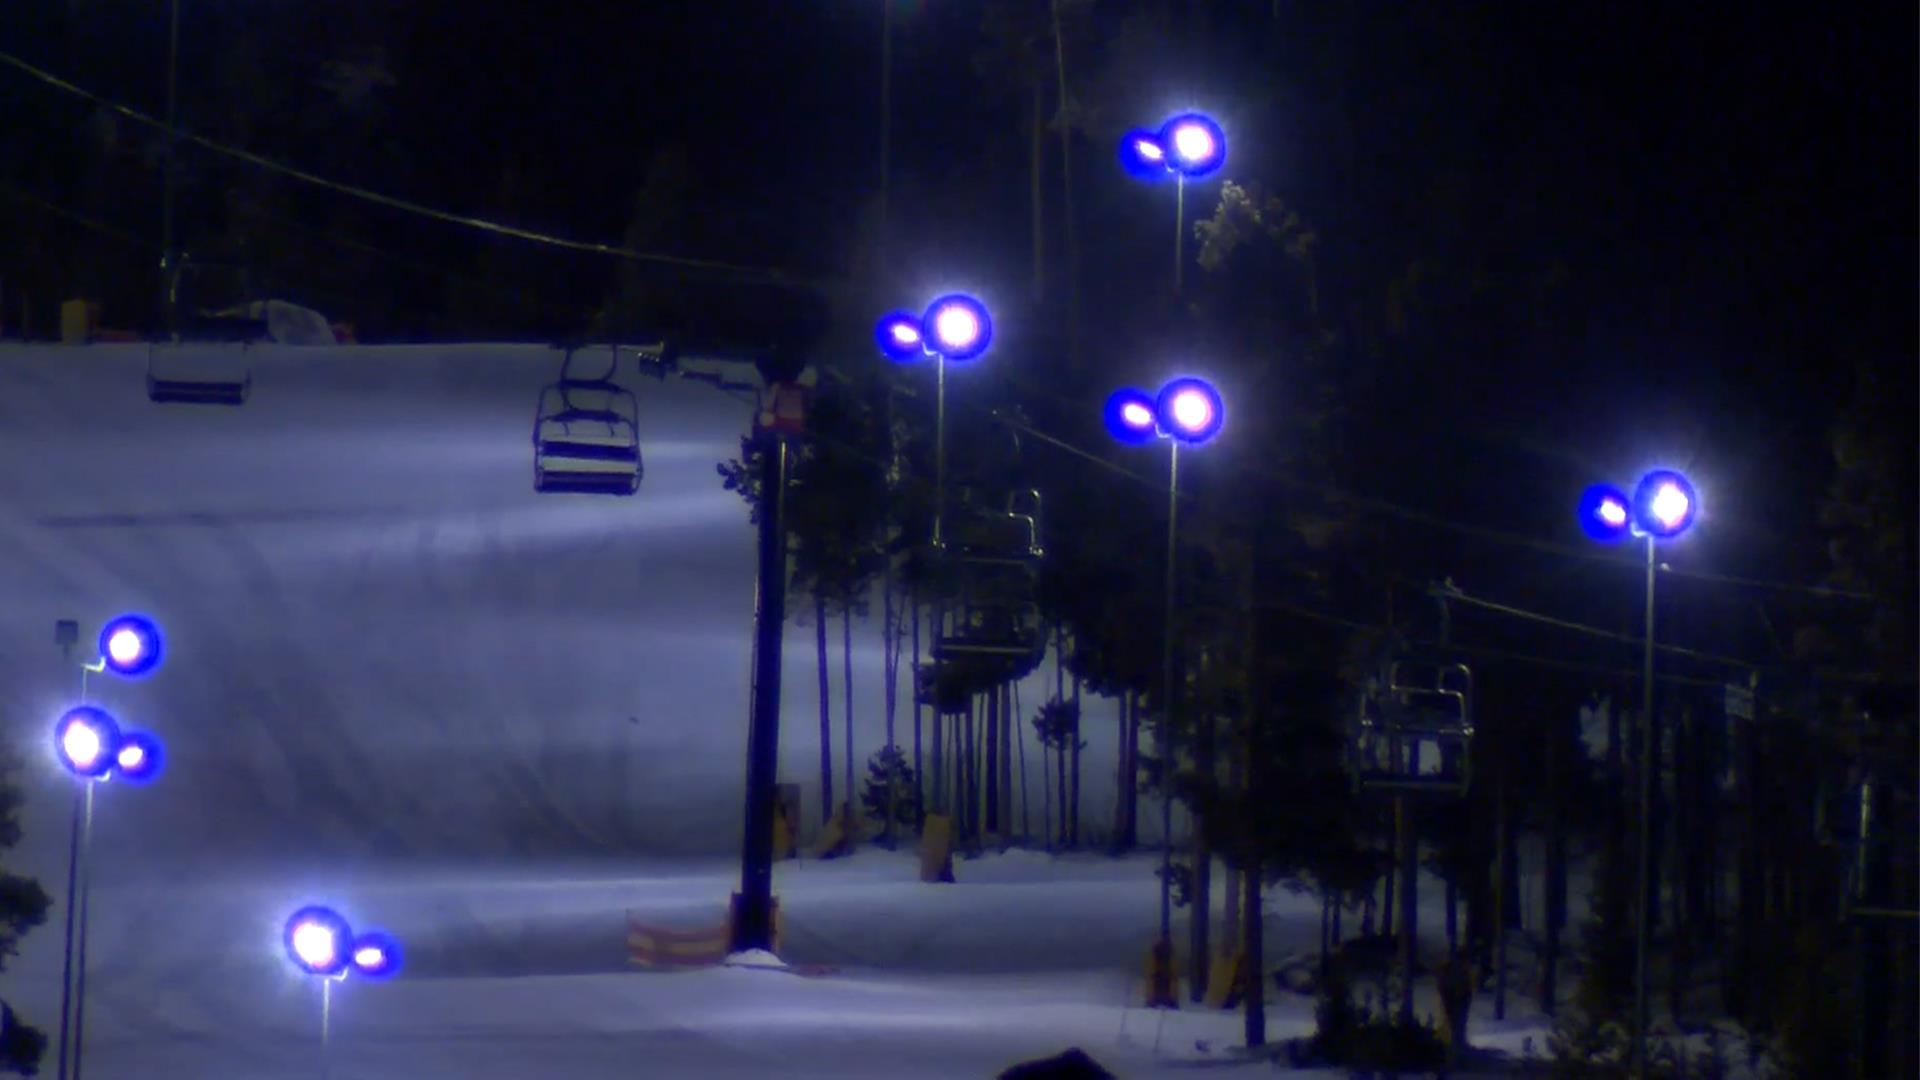 Mother Dies After Falling From Ski Lift NBC News